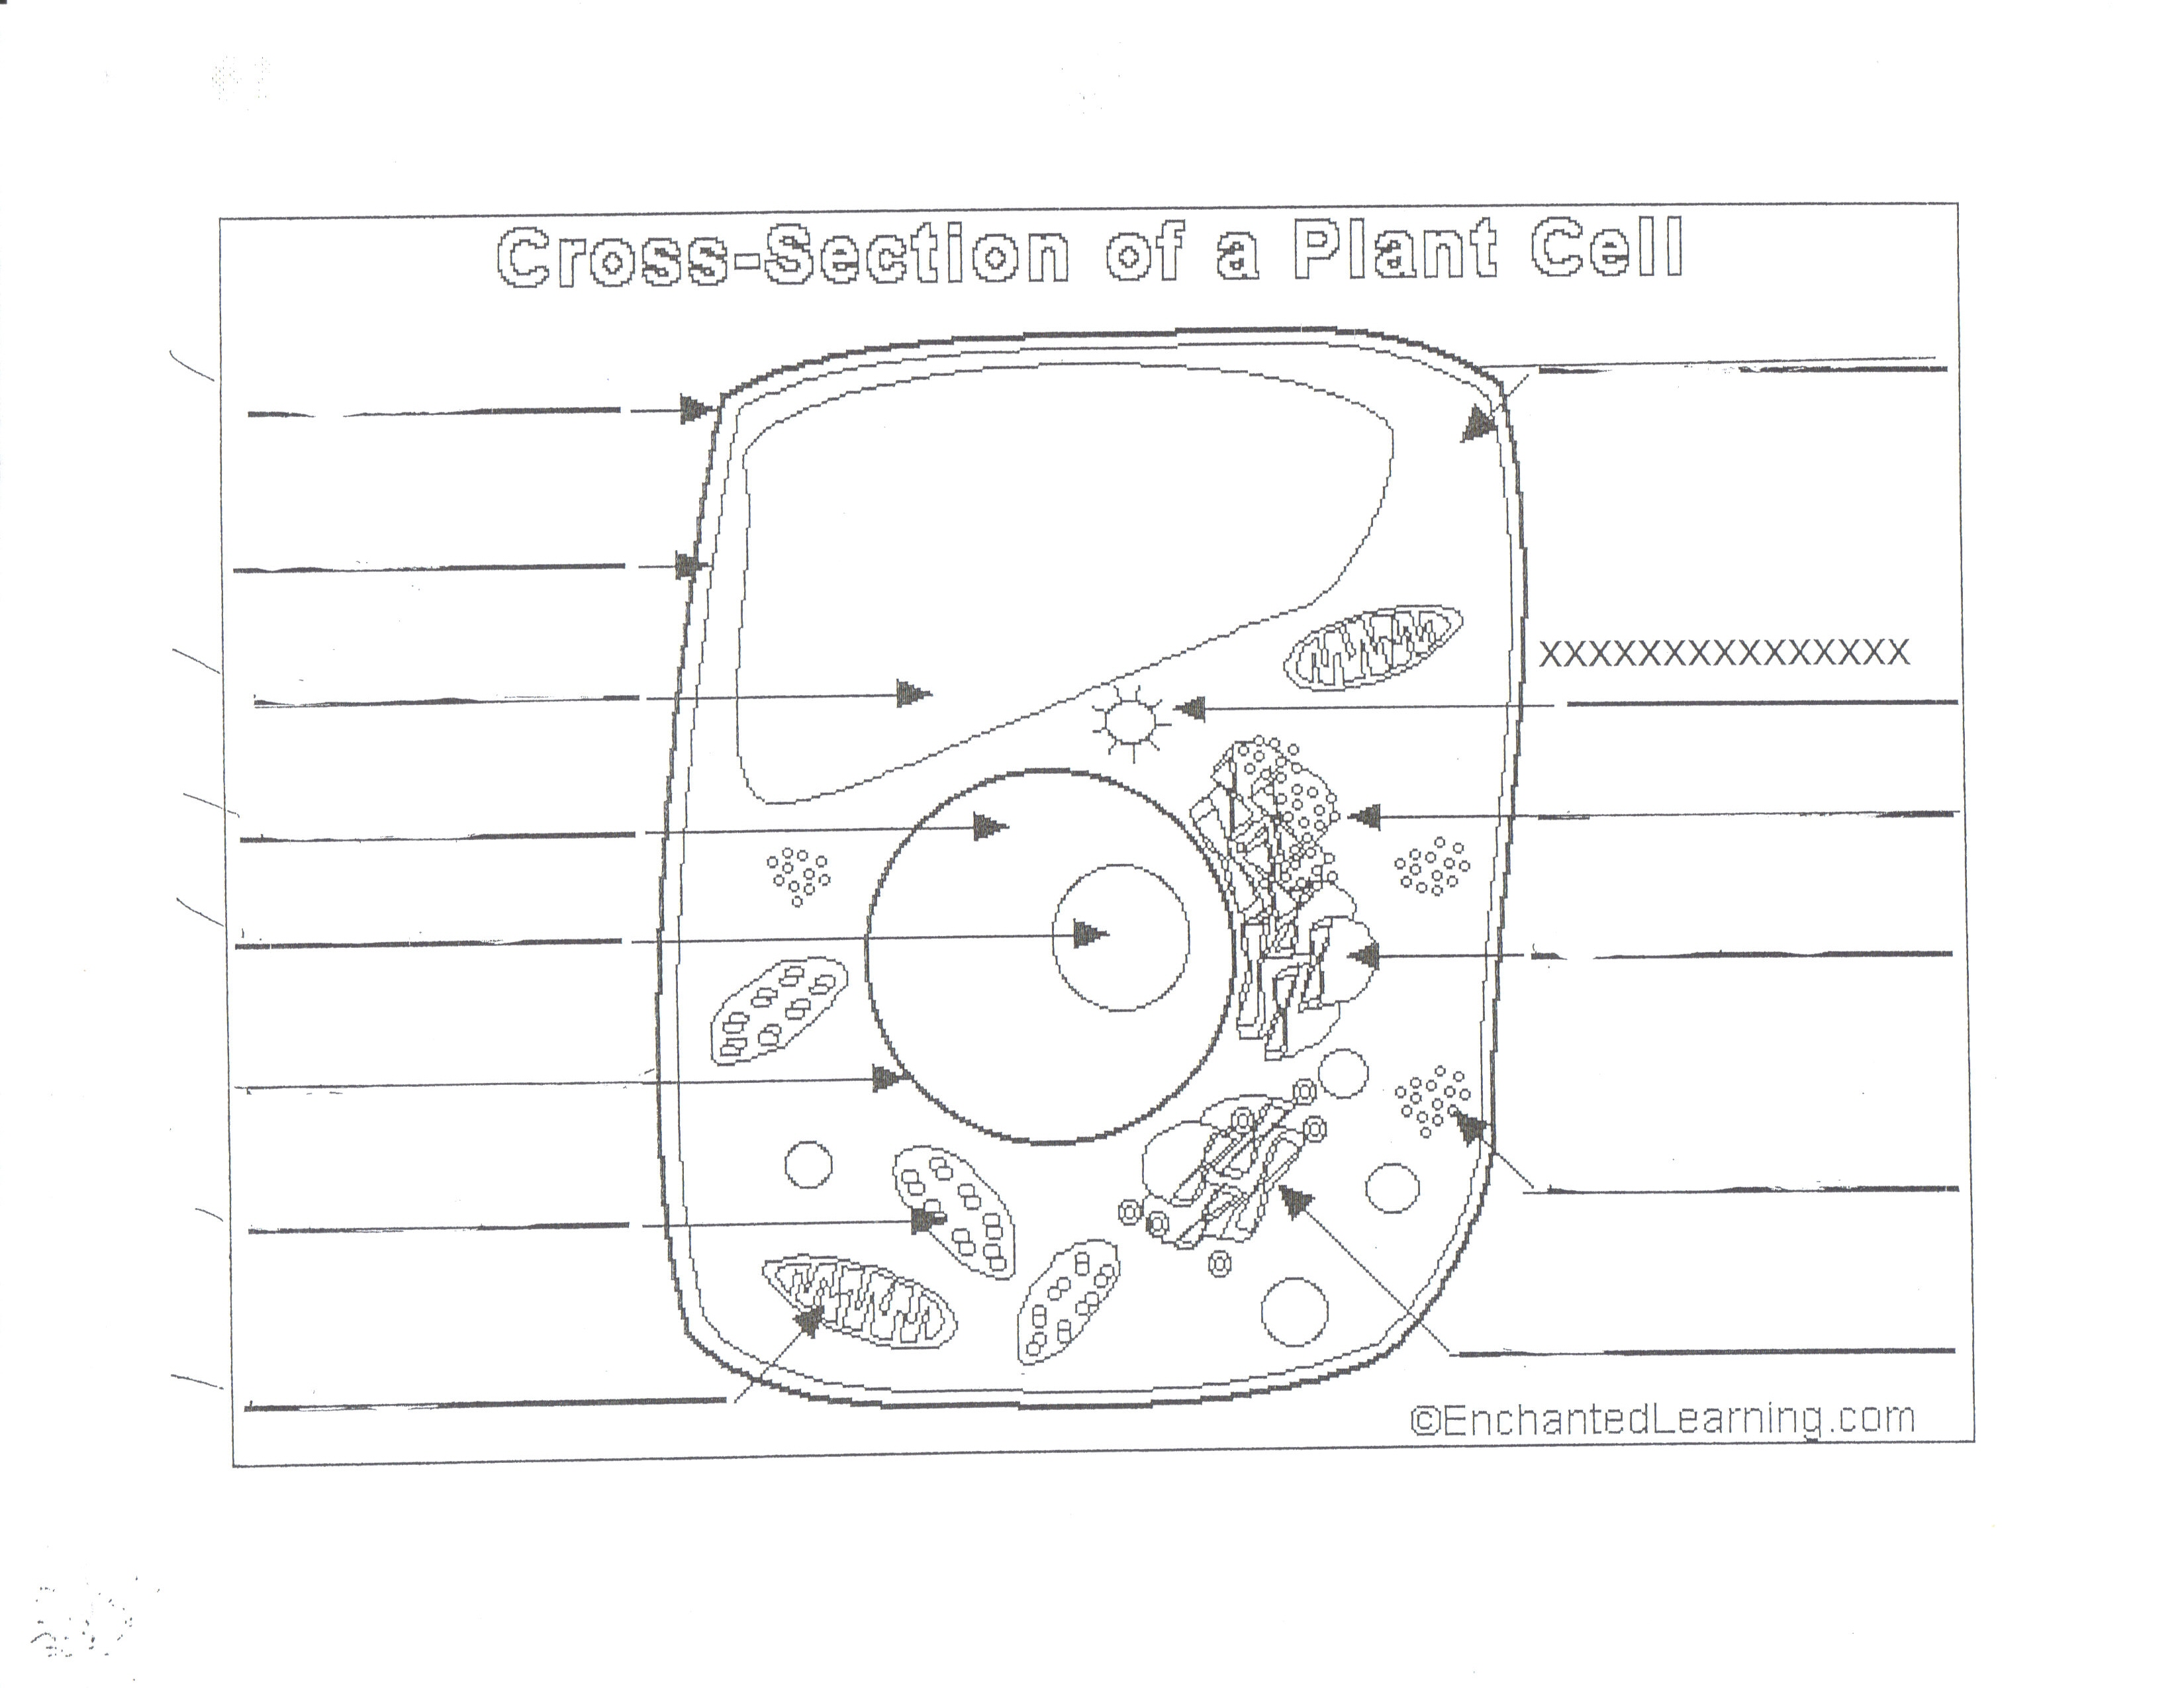 plant and animal cell diagram worksheet cat 5 wiring 568b hoelzle mr b science 7th grade class notes